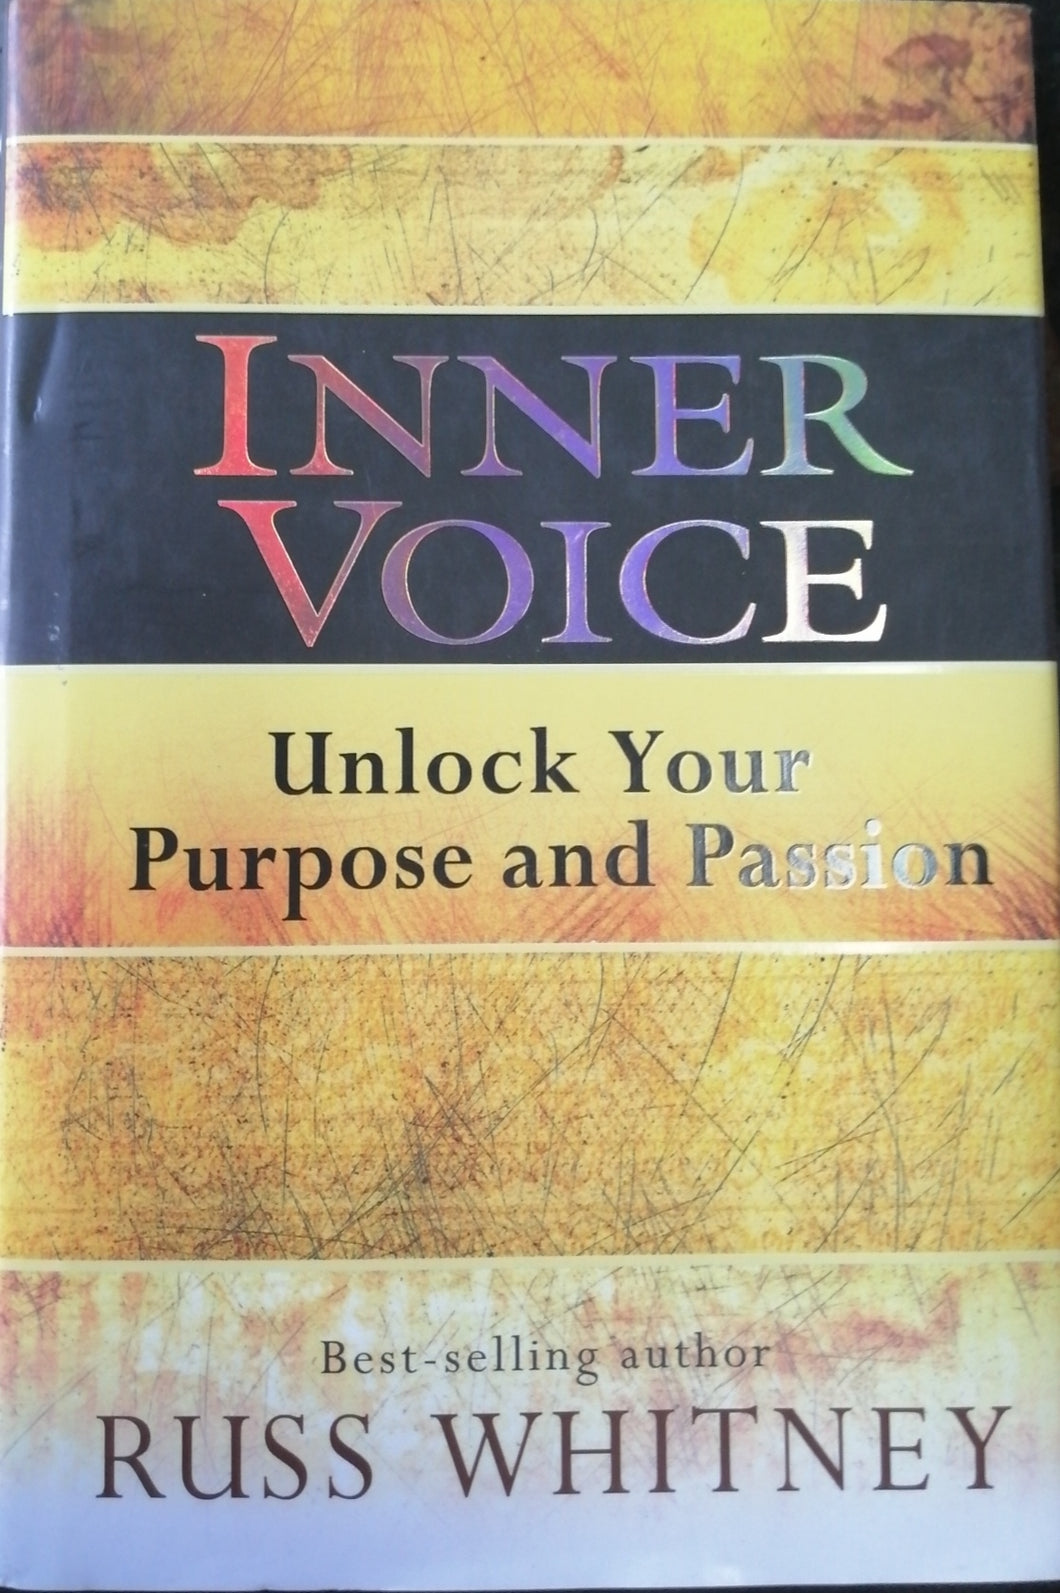 Inner Voice unlock your purpose and passion by Russ Whitney